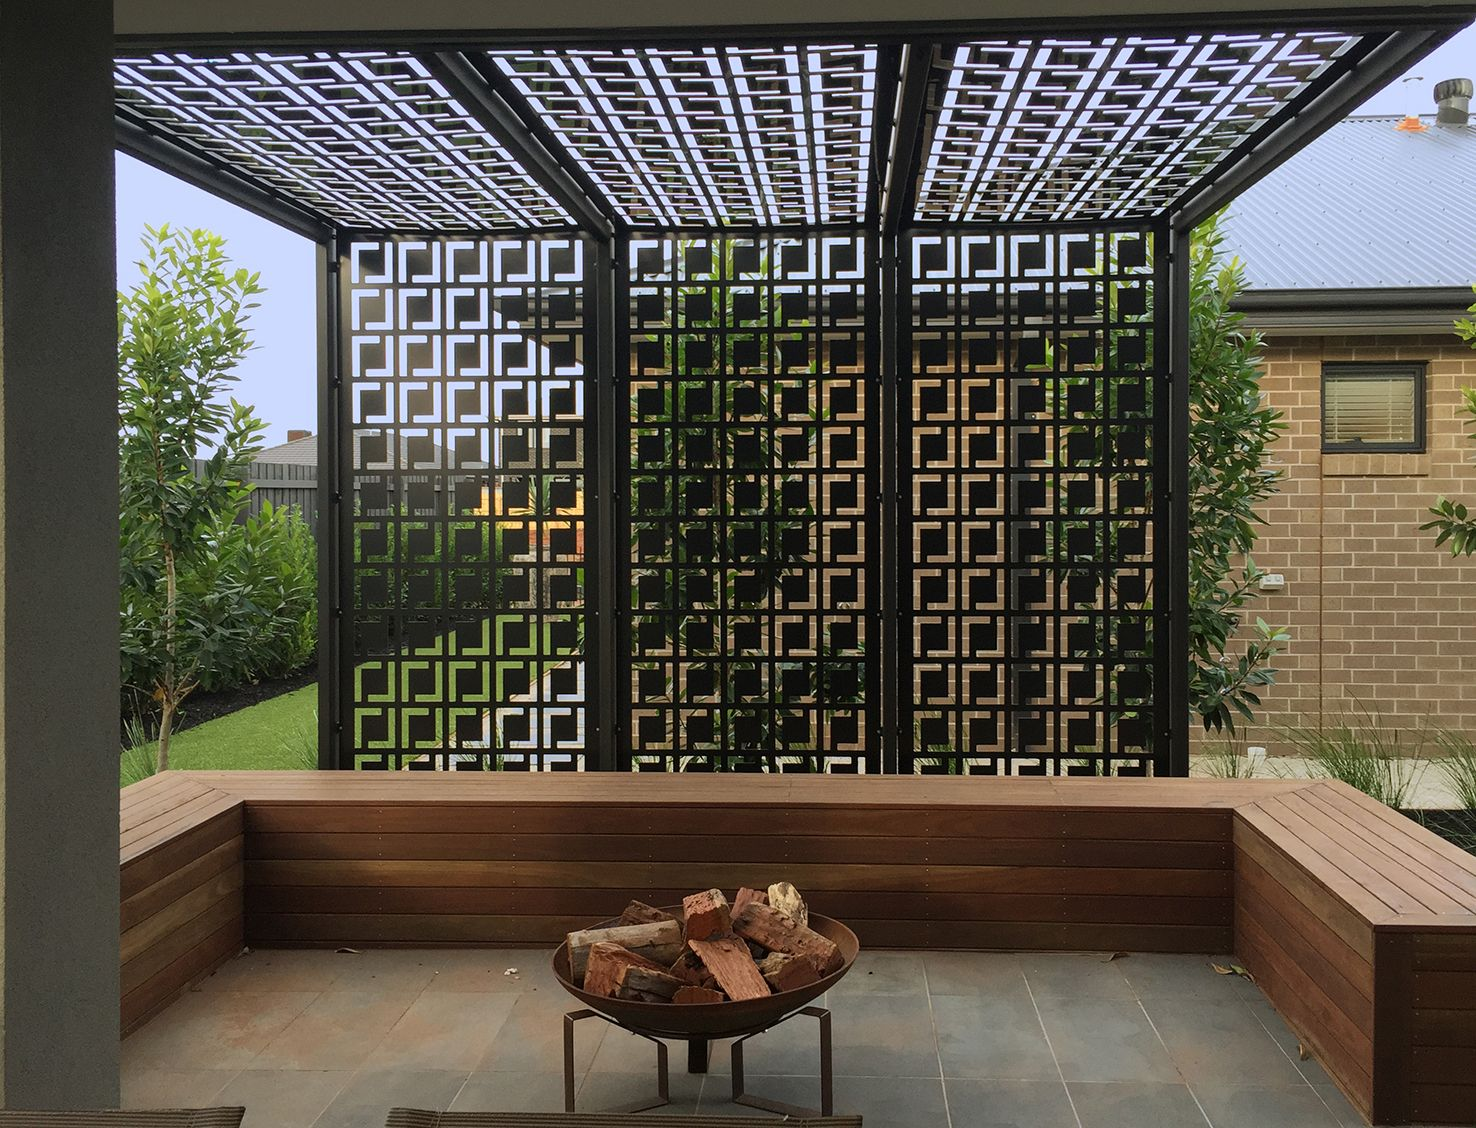 Pergola privacy screen made using decorative screens for Tall outdoor privacy screen panels